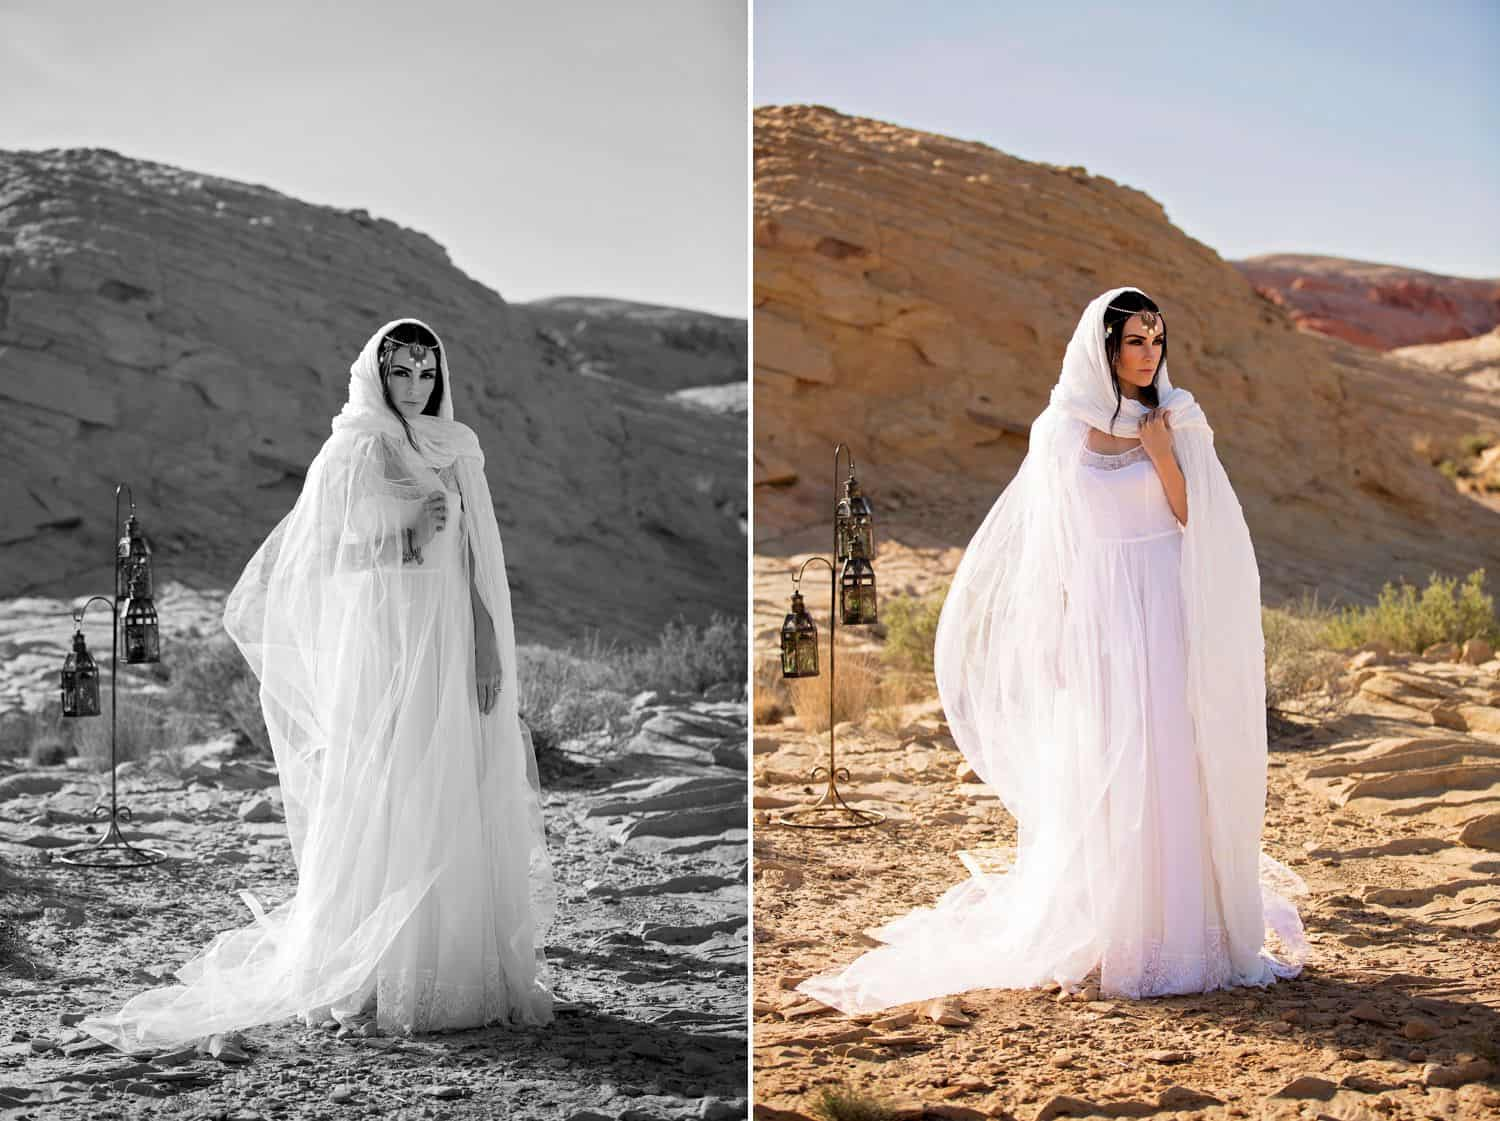 13 Things Every Photographer Should Know After 3 Years: Black and White or Color?